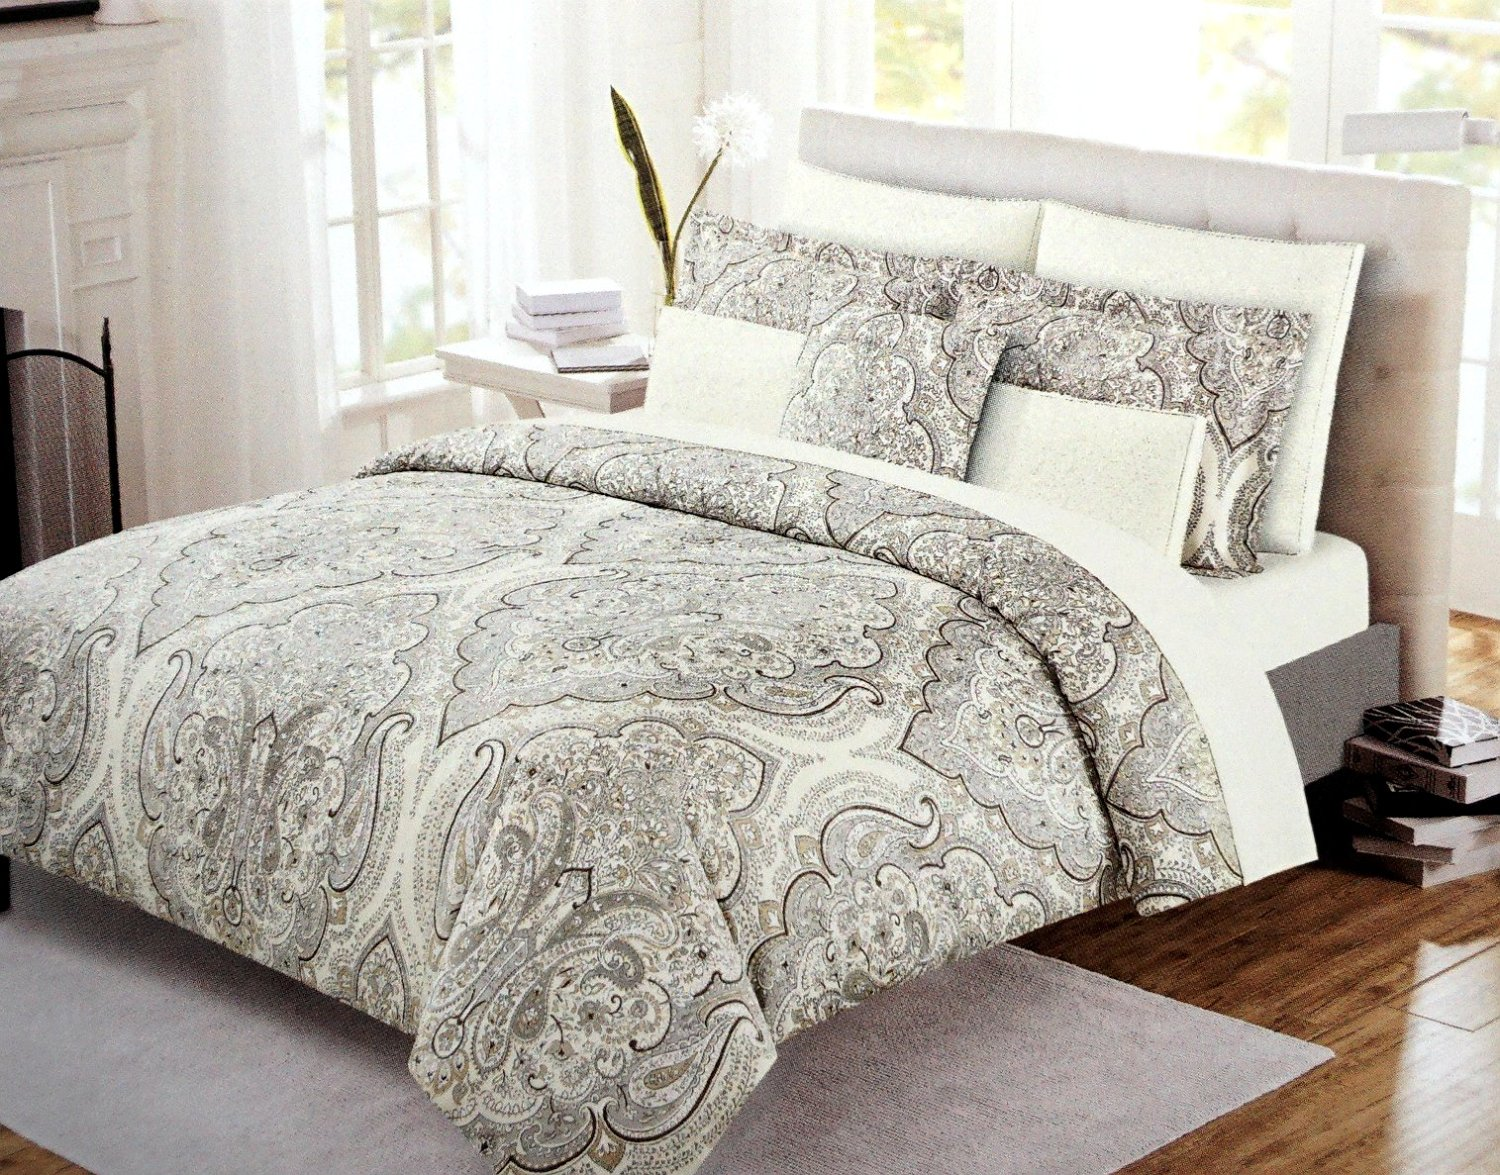 Buy Cynthia Rowley Boho Chic Bedding Taupe Grey Bohemian Paisley Salma Duvet Cover Set 3pc Large Moroccan Damask Medallion Gray Beige Tan Bothe Style King In Cheap Price On Alibaba Com